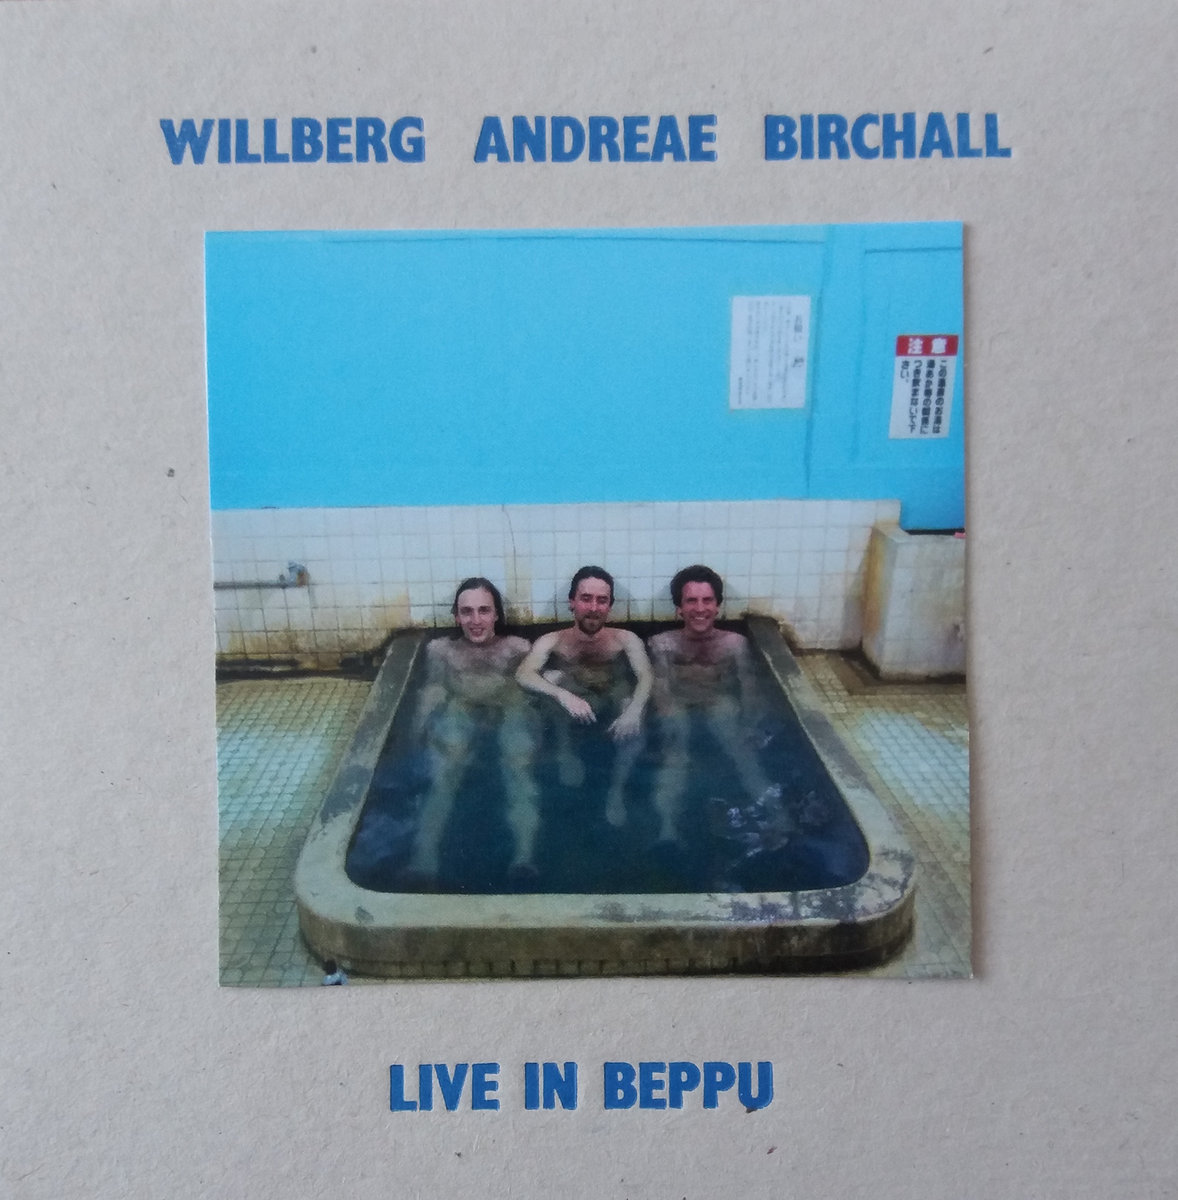 sam andreae Live in Beppu OUT NOW